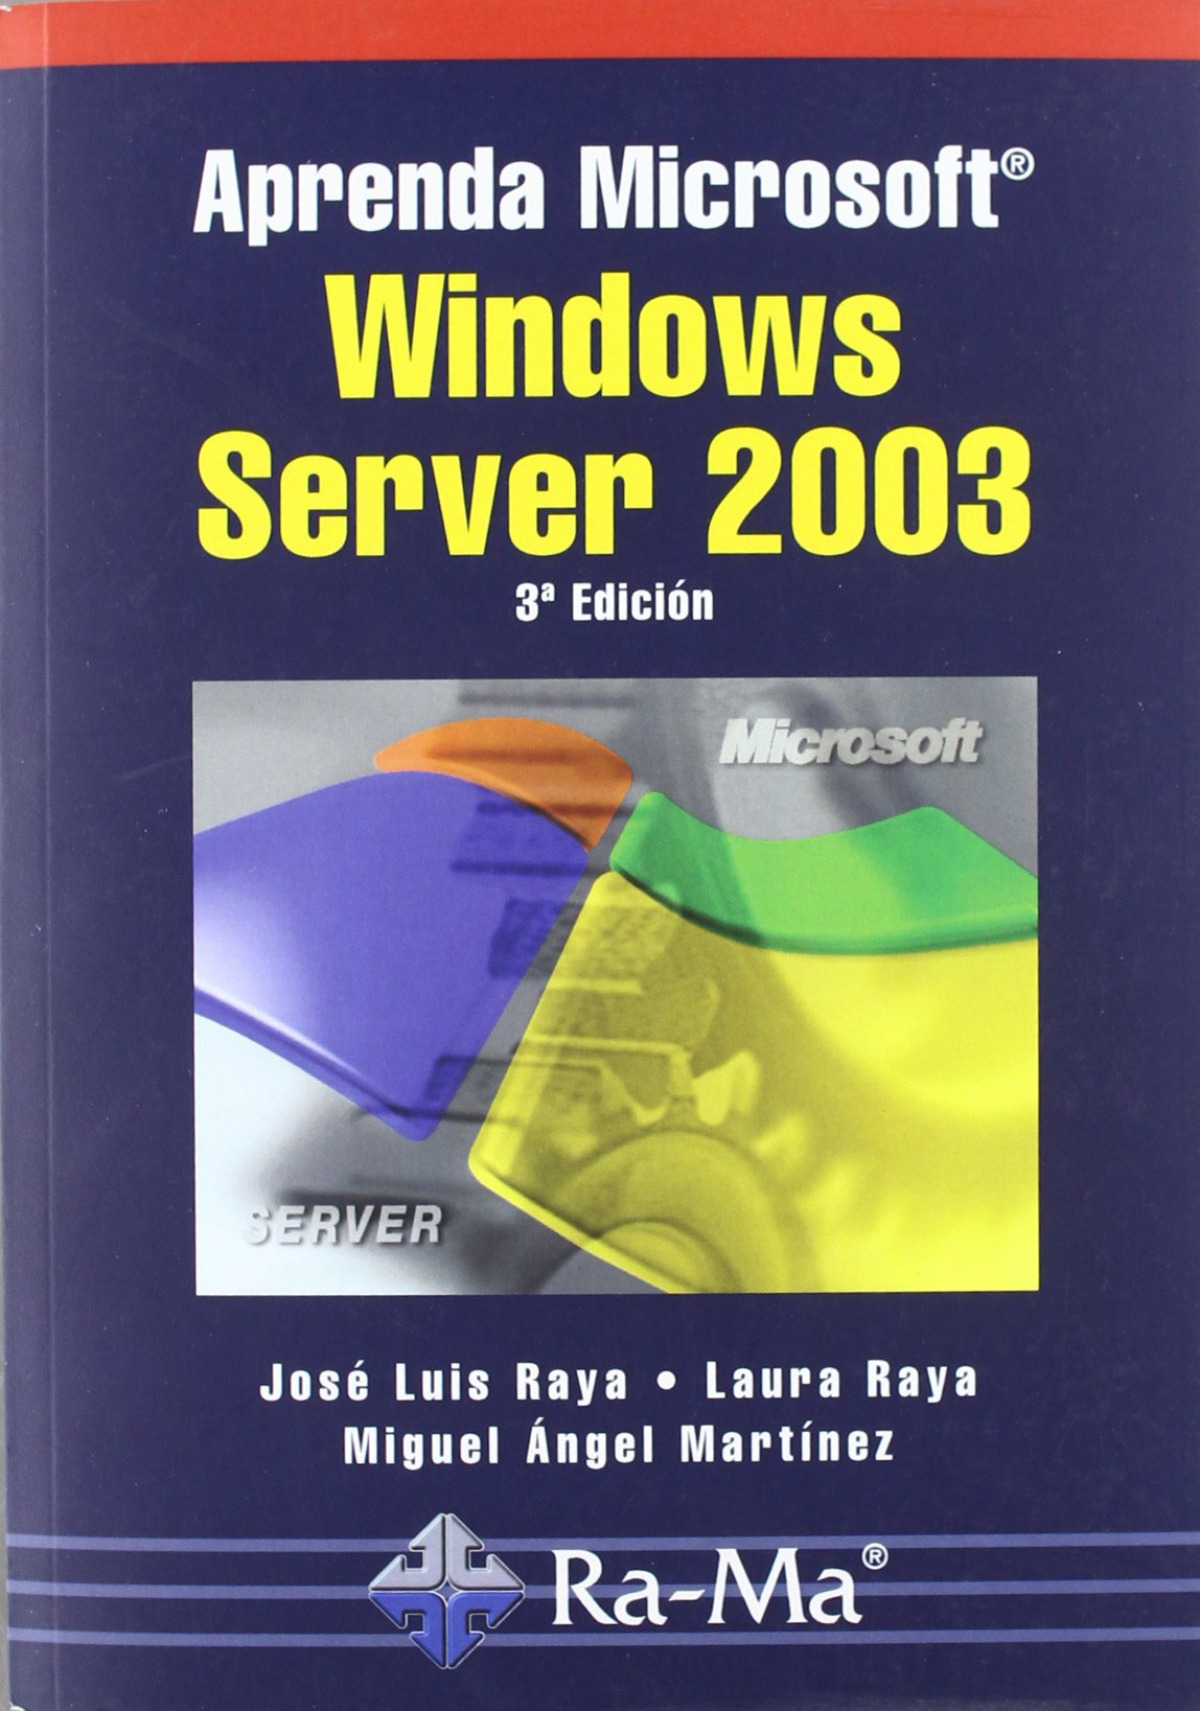 Aprenda msoft.windows server 2003 (3ª edicion) - Raya, Jose Luis/Raya, Laura/Martinez, M.A.